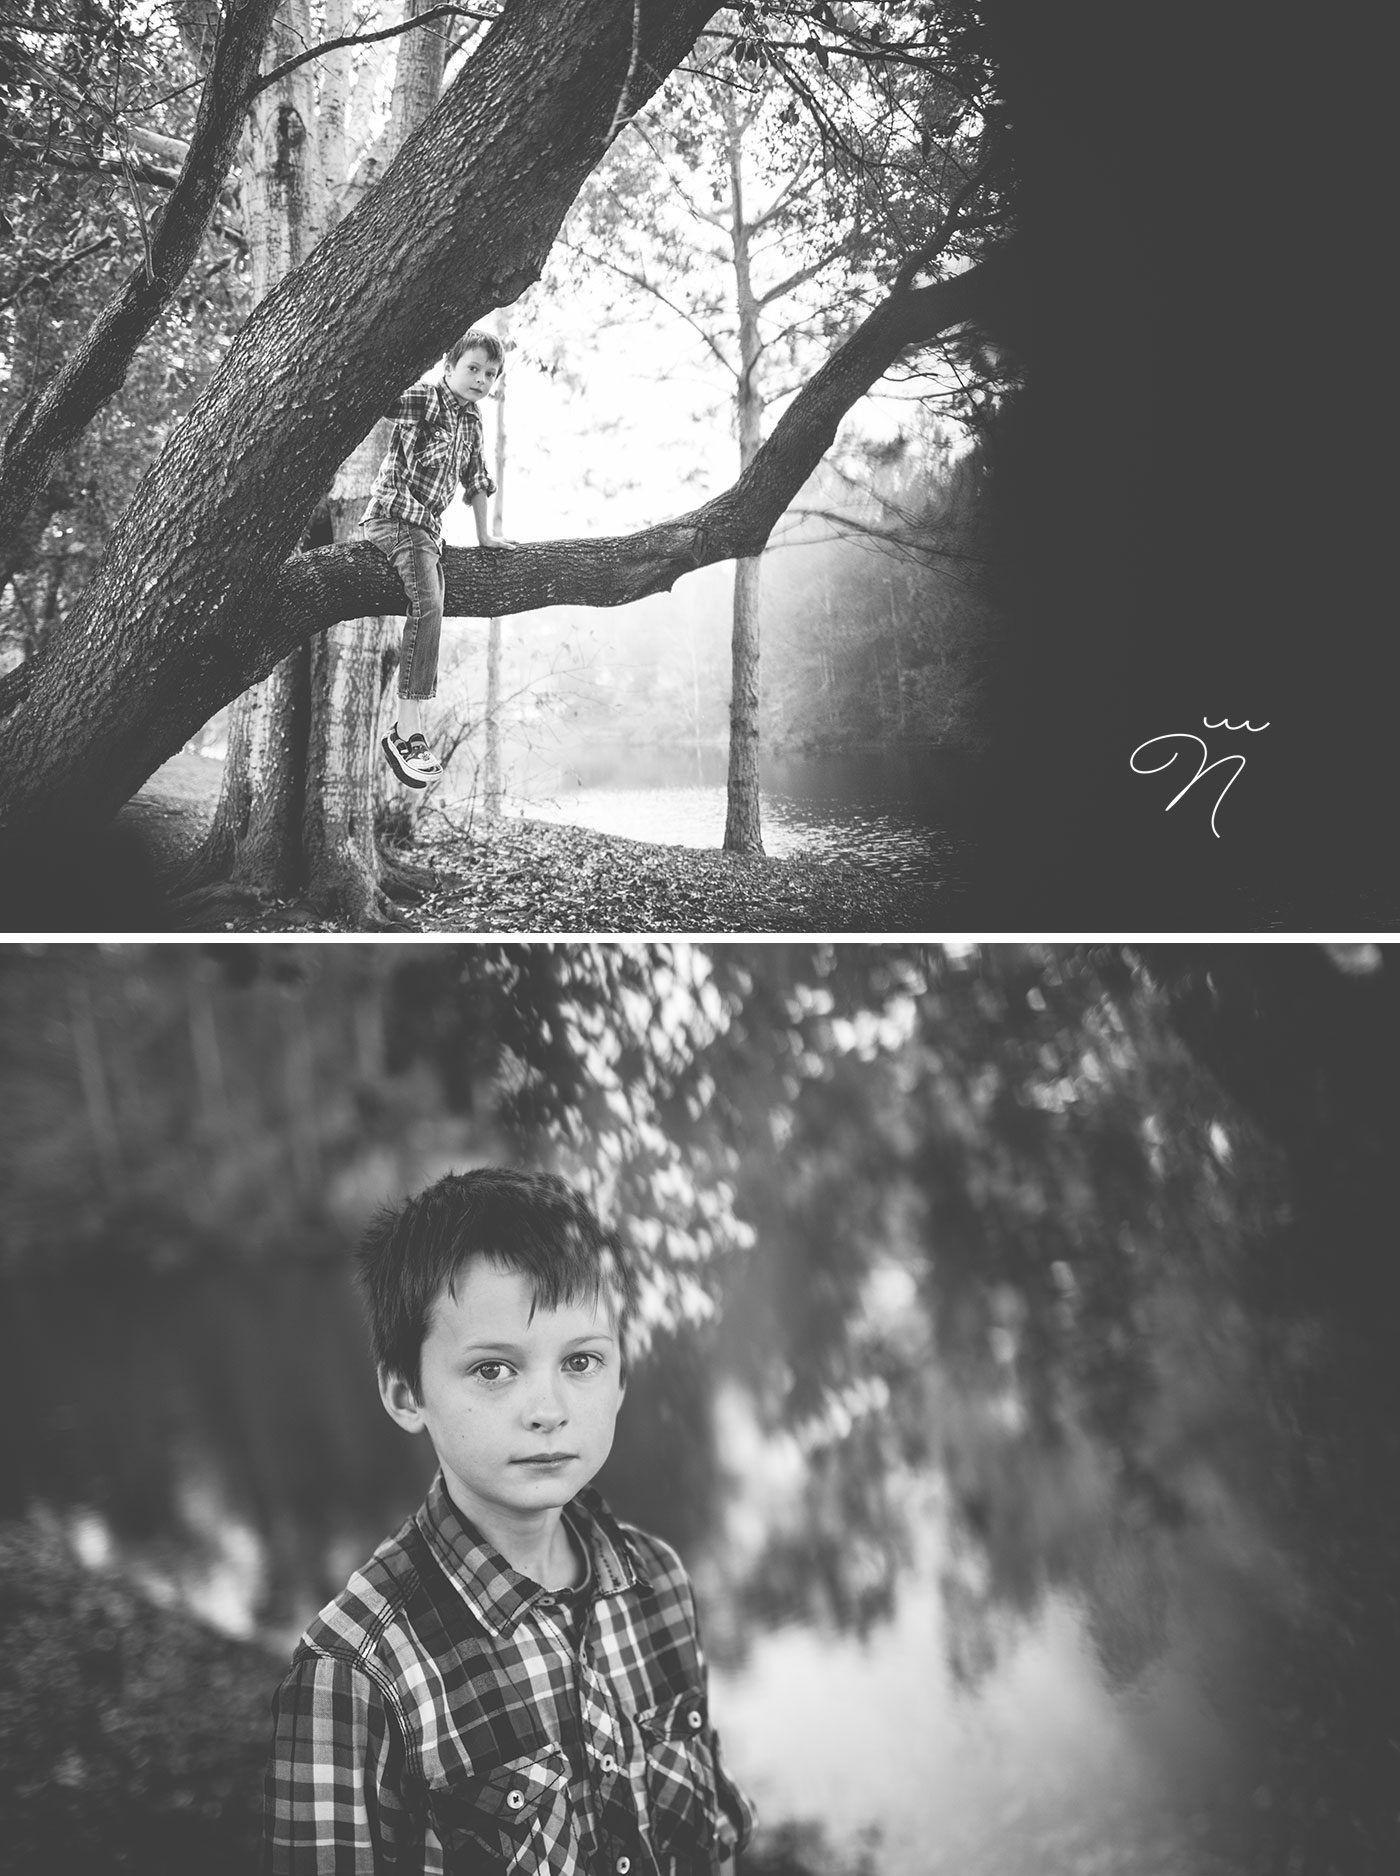 Foggy Day Family Photography Session near Sandestin